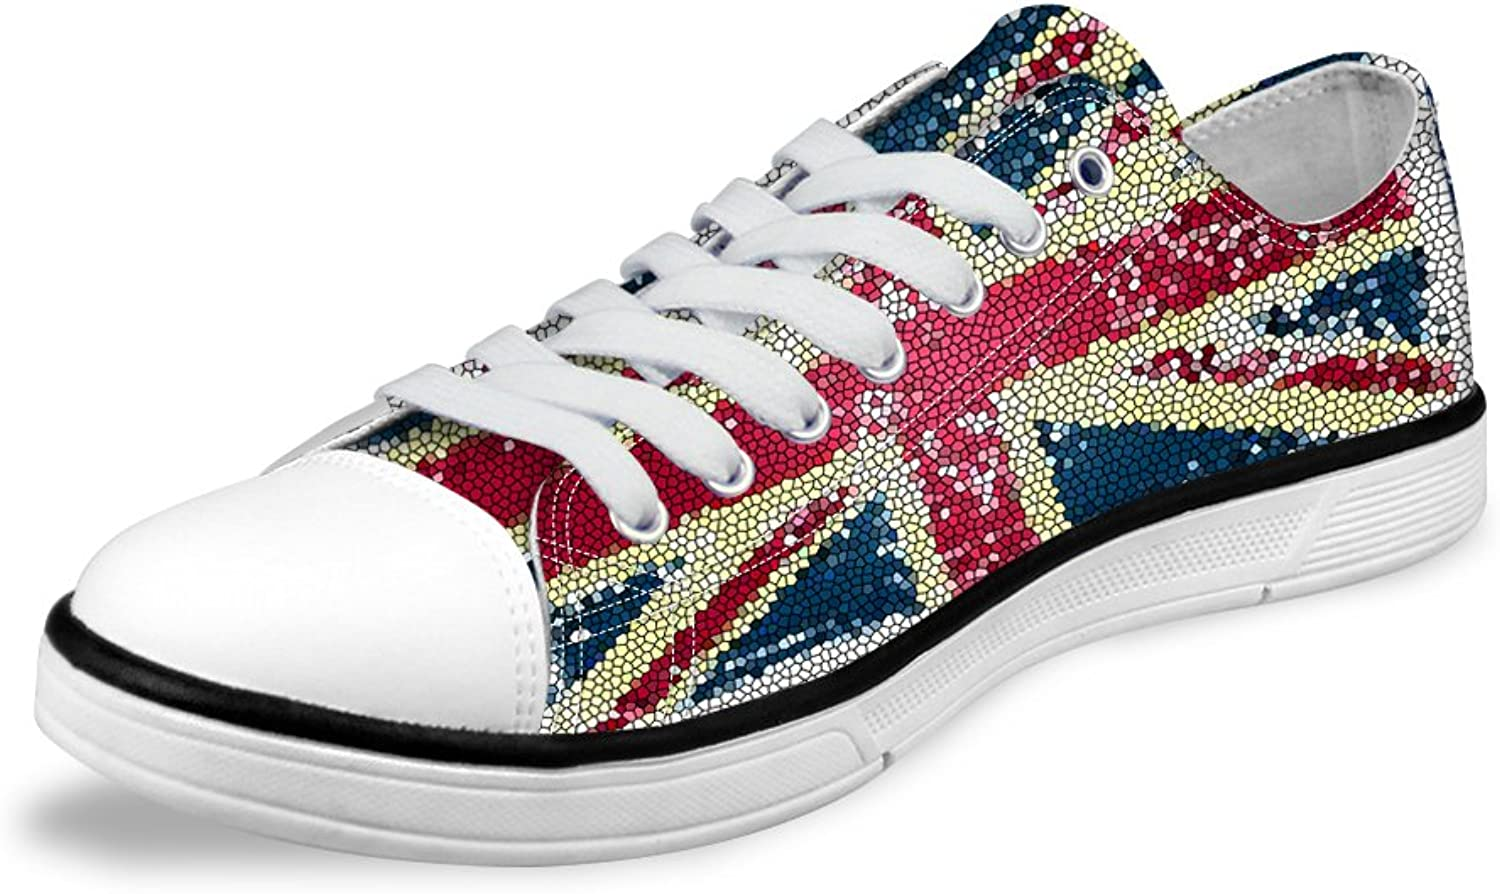 Canvas Lace-up Low Top shoes for Women Men with Fashion American Flag Pattern